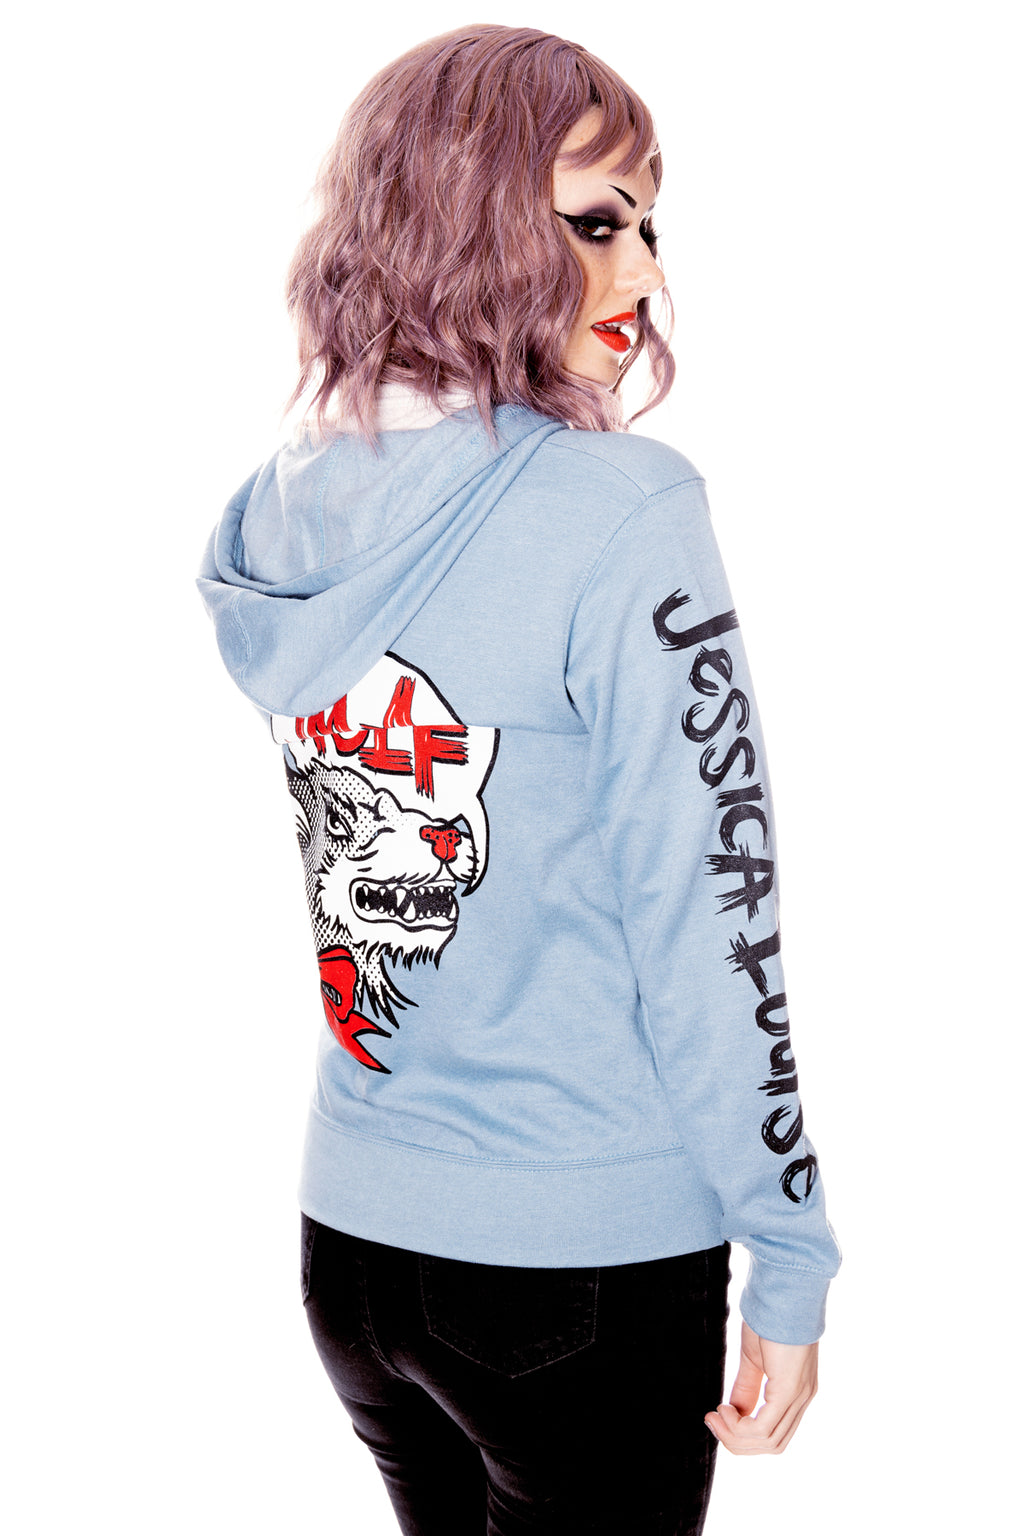 IM A WOLF - Hoodie Blue - shopjessicalouise.com